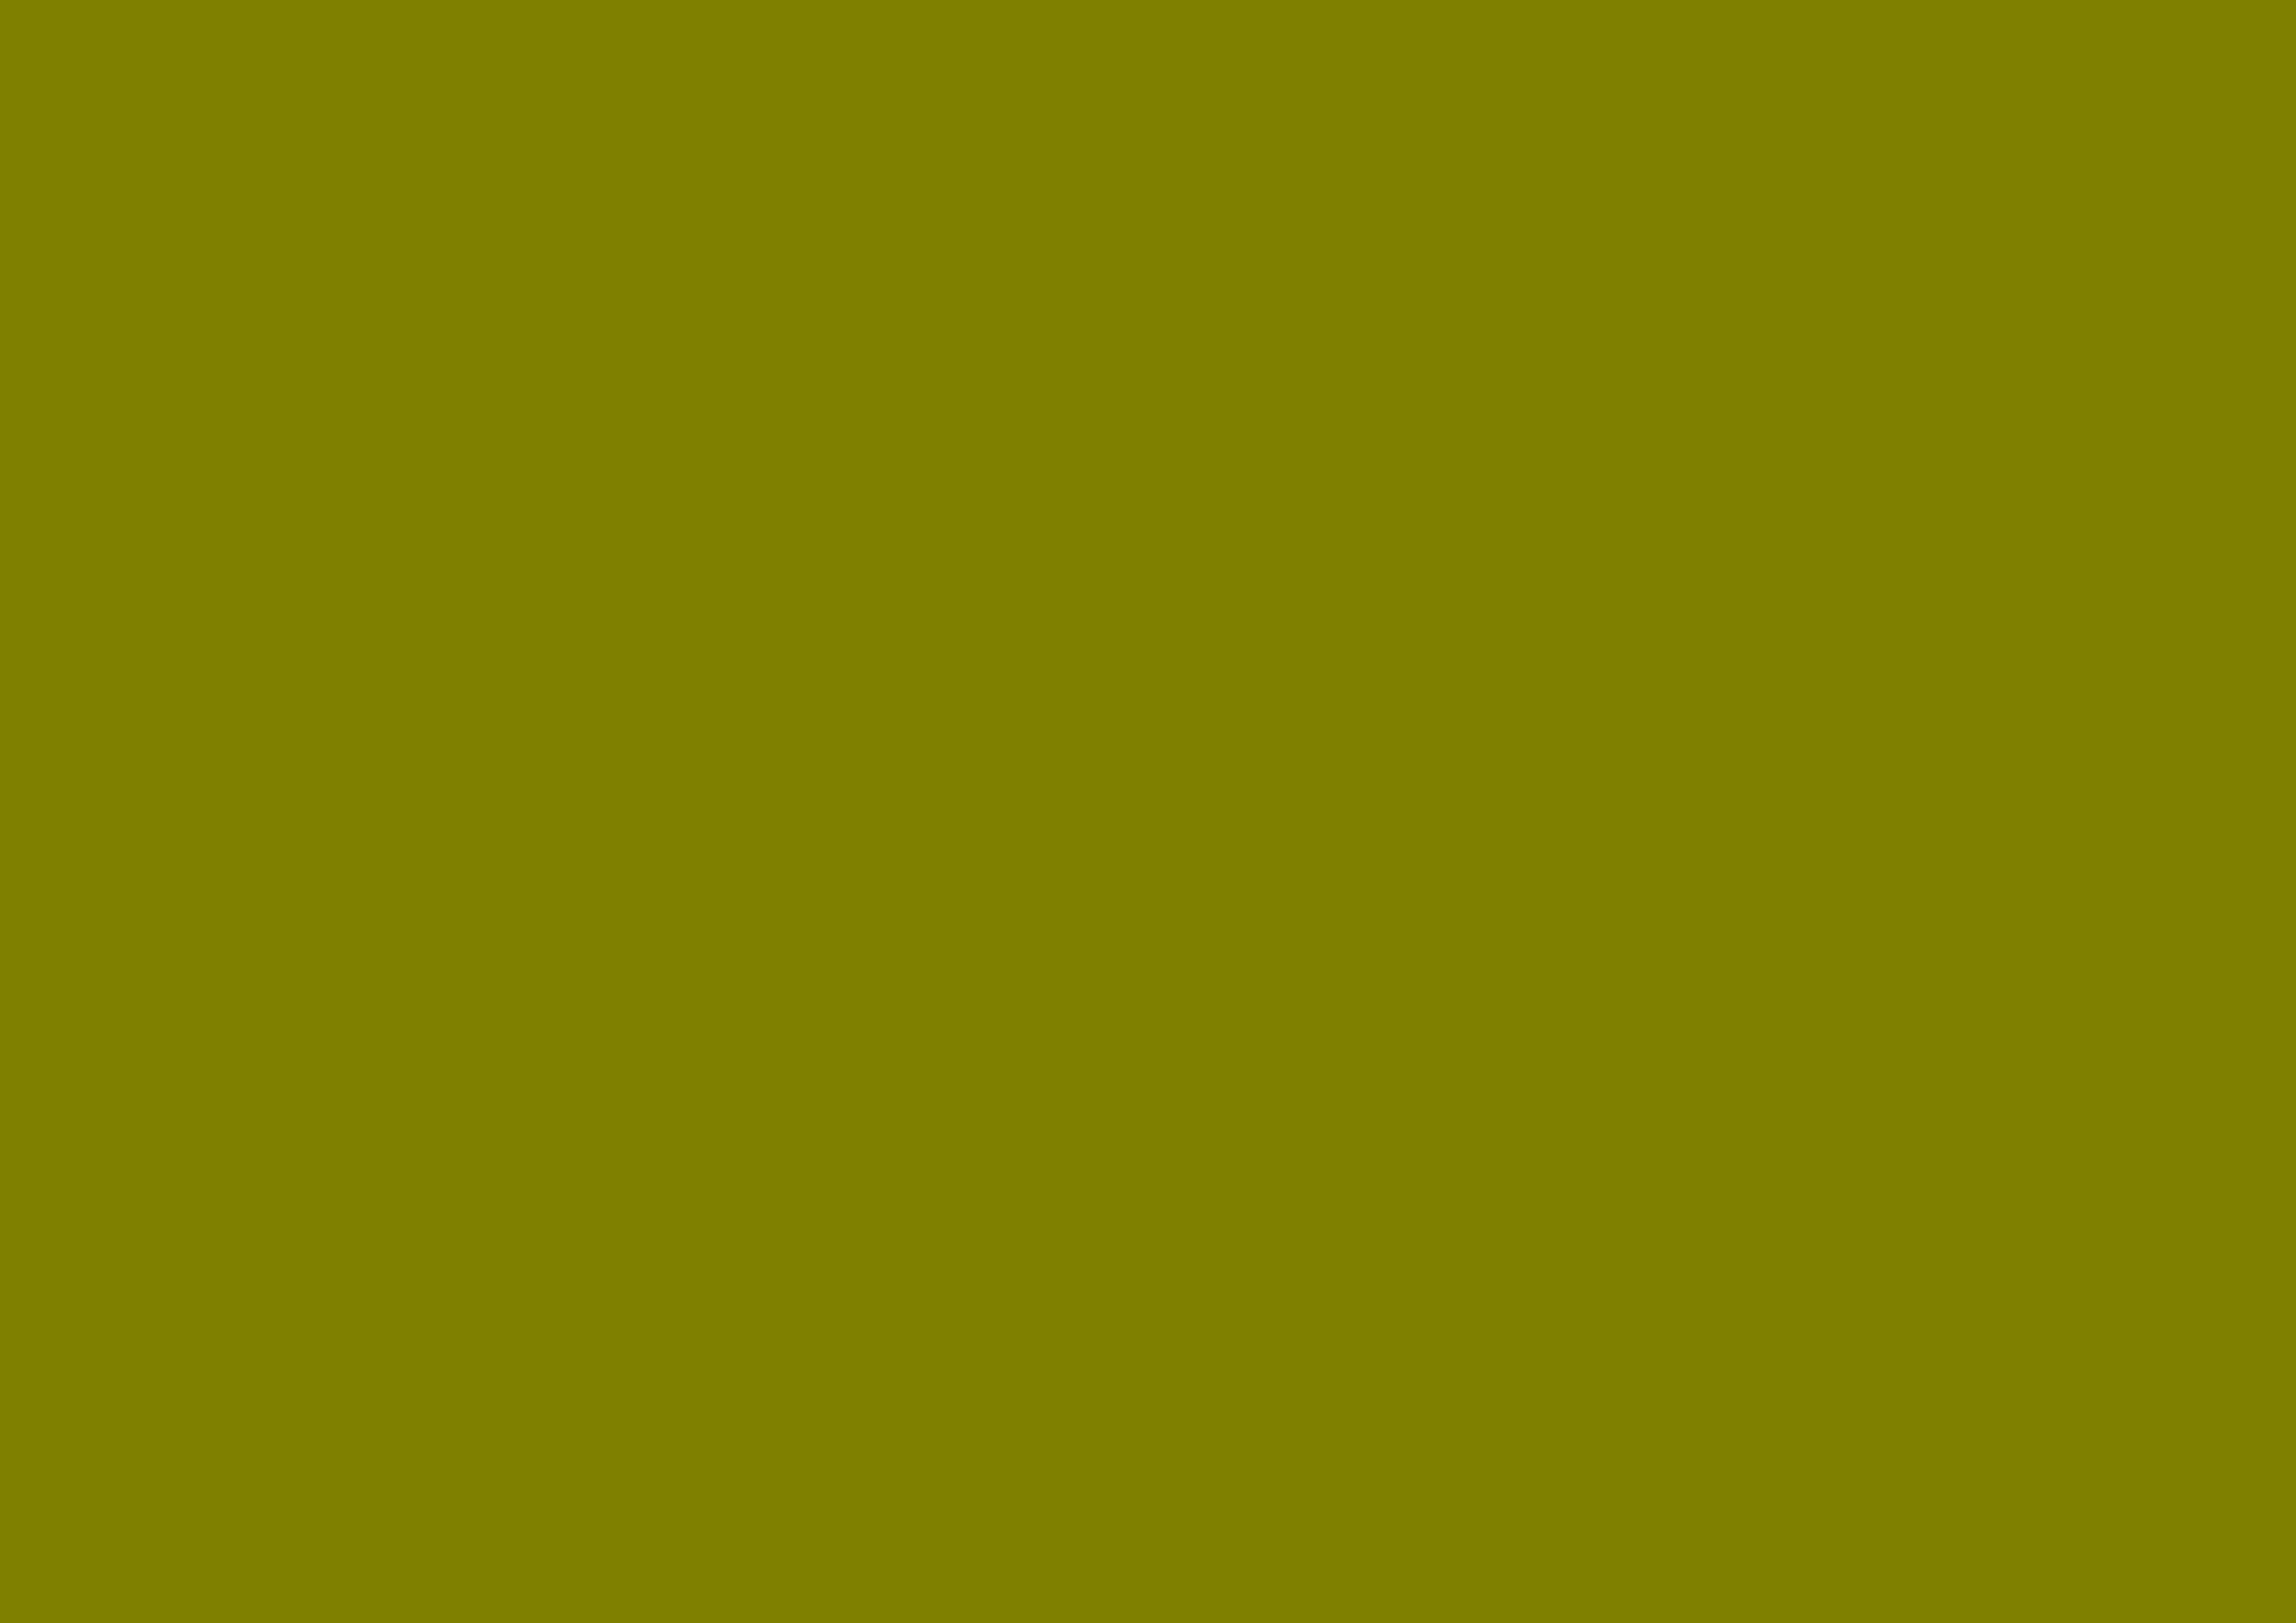 3508x2480 Olive Solid Color Background